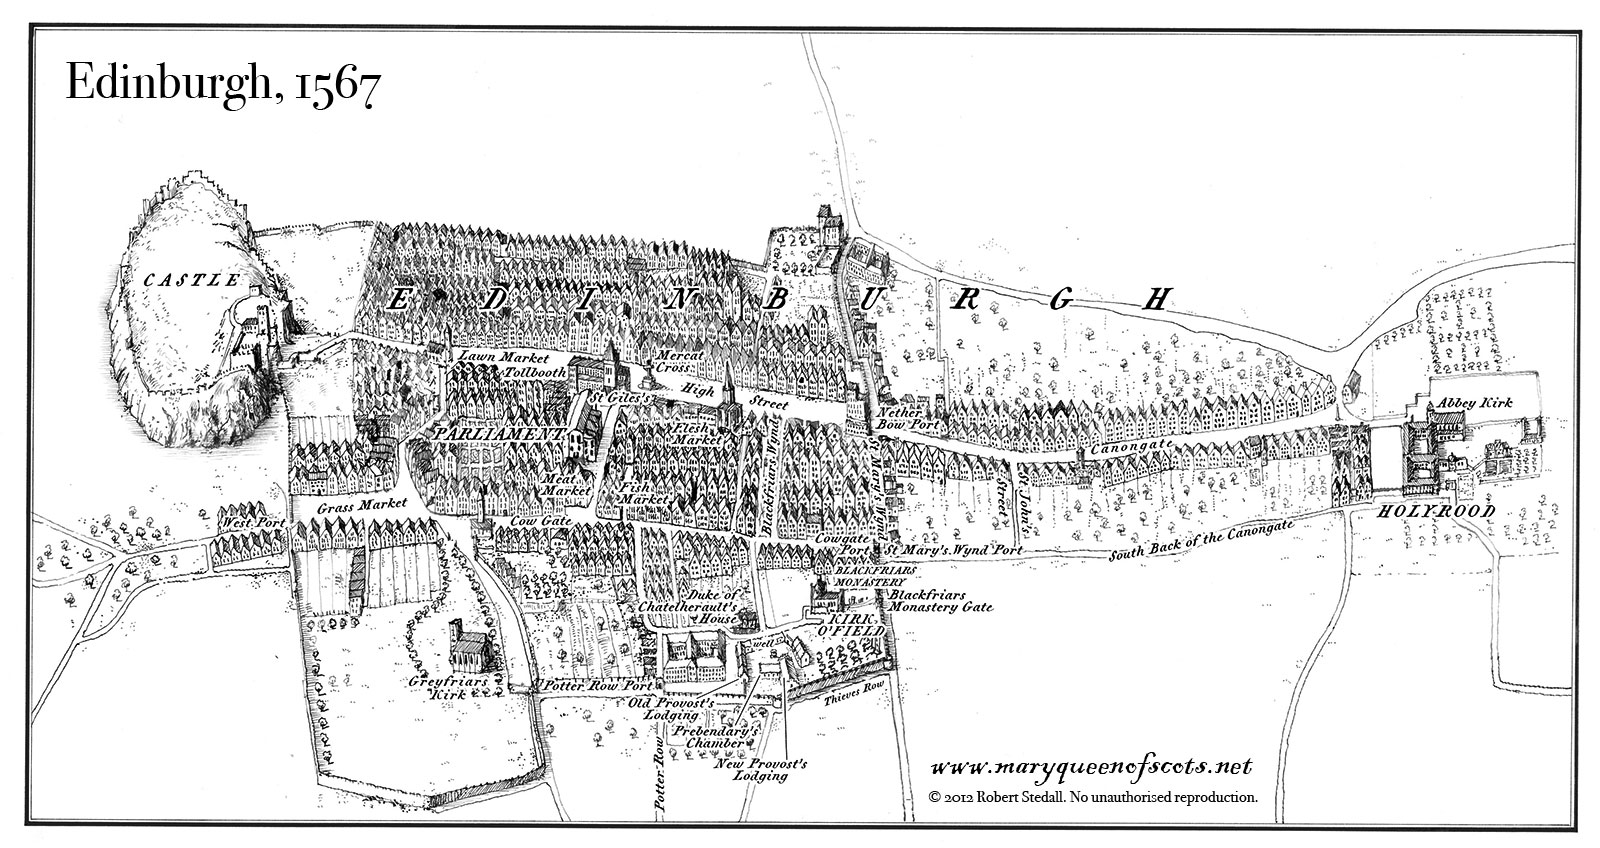 Worksheet. A map of the city of Edinburgh from the time of Mary Queen of